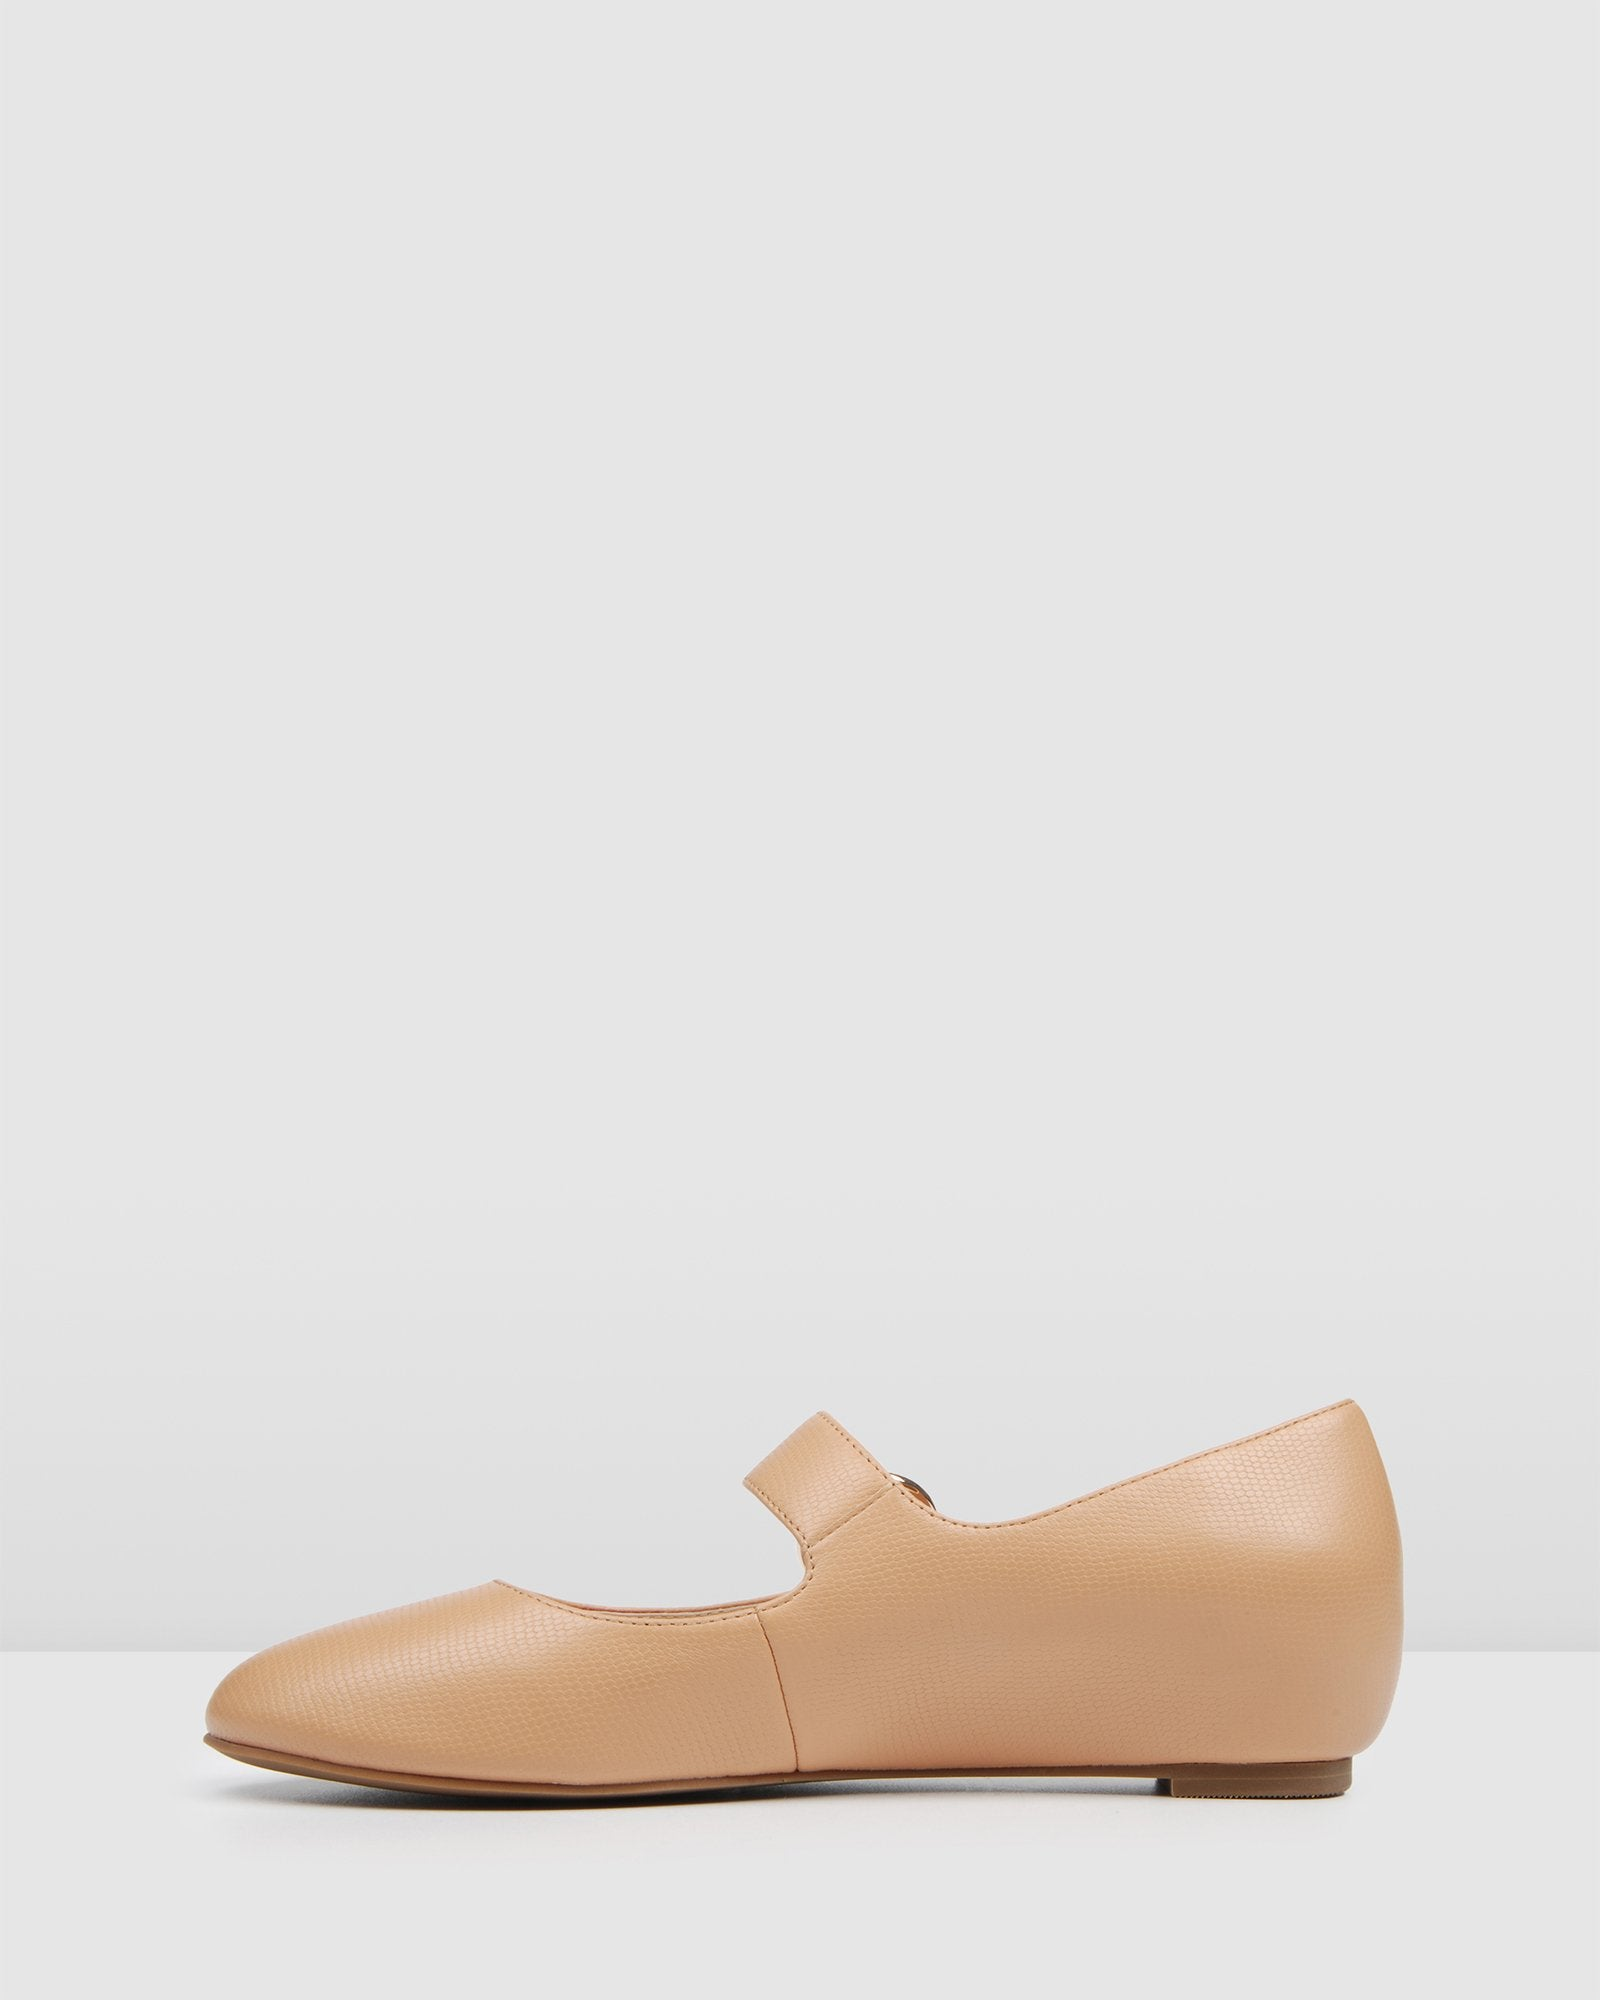 IMPALA DRESS FLATS CAMEL LEATHER